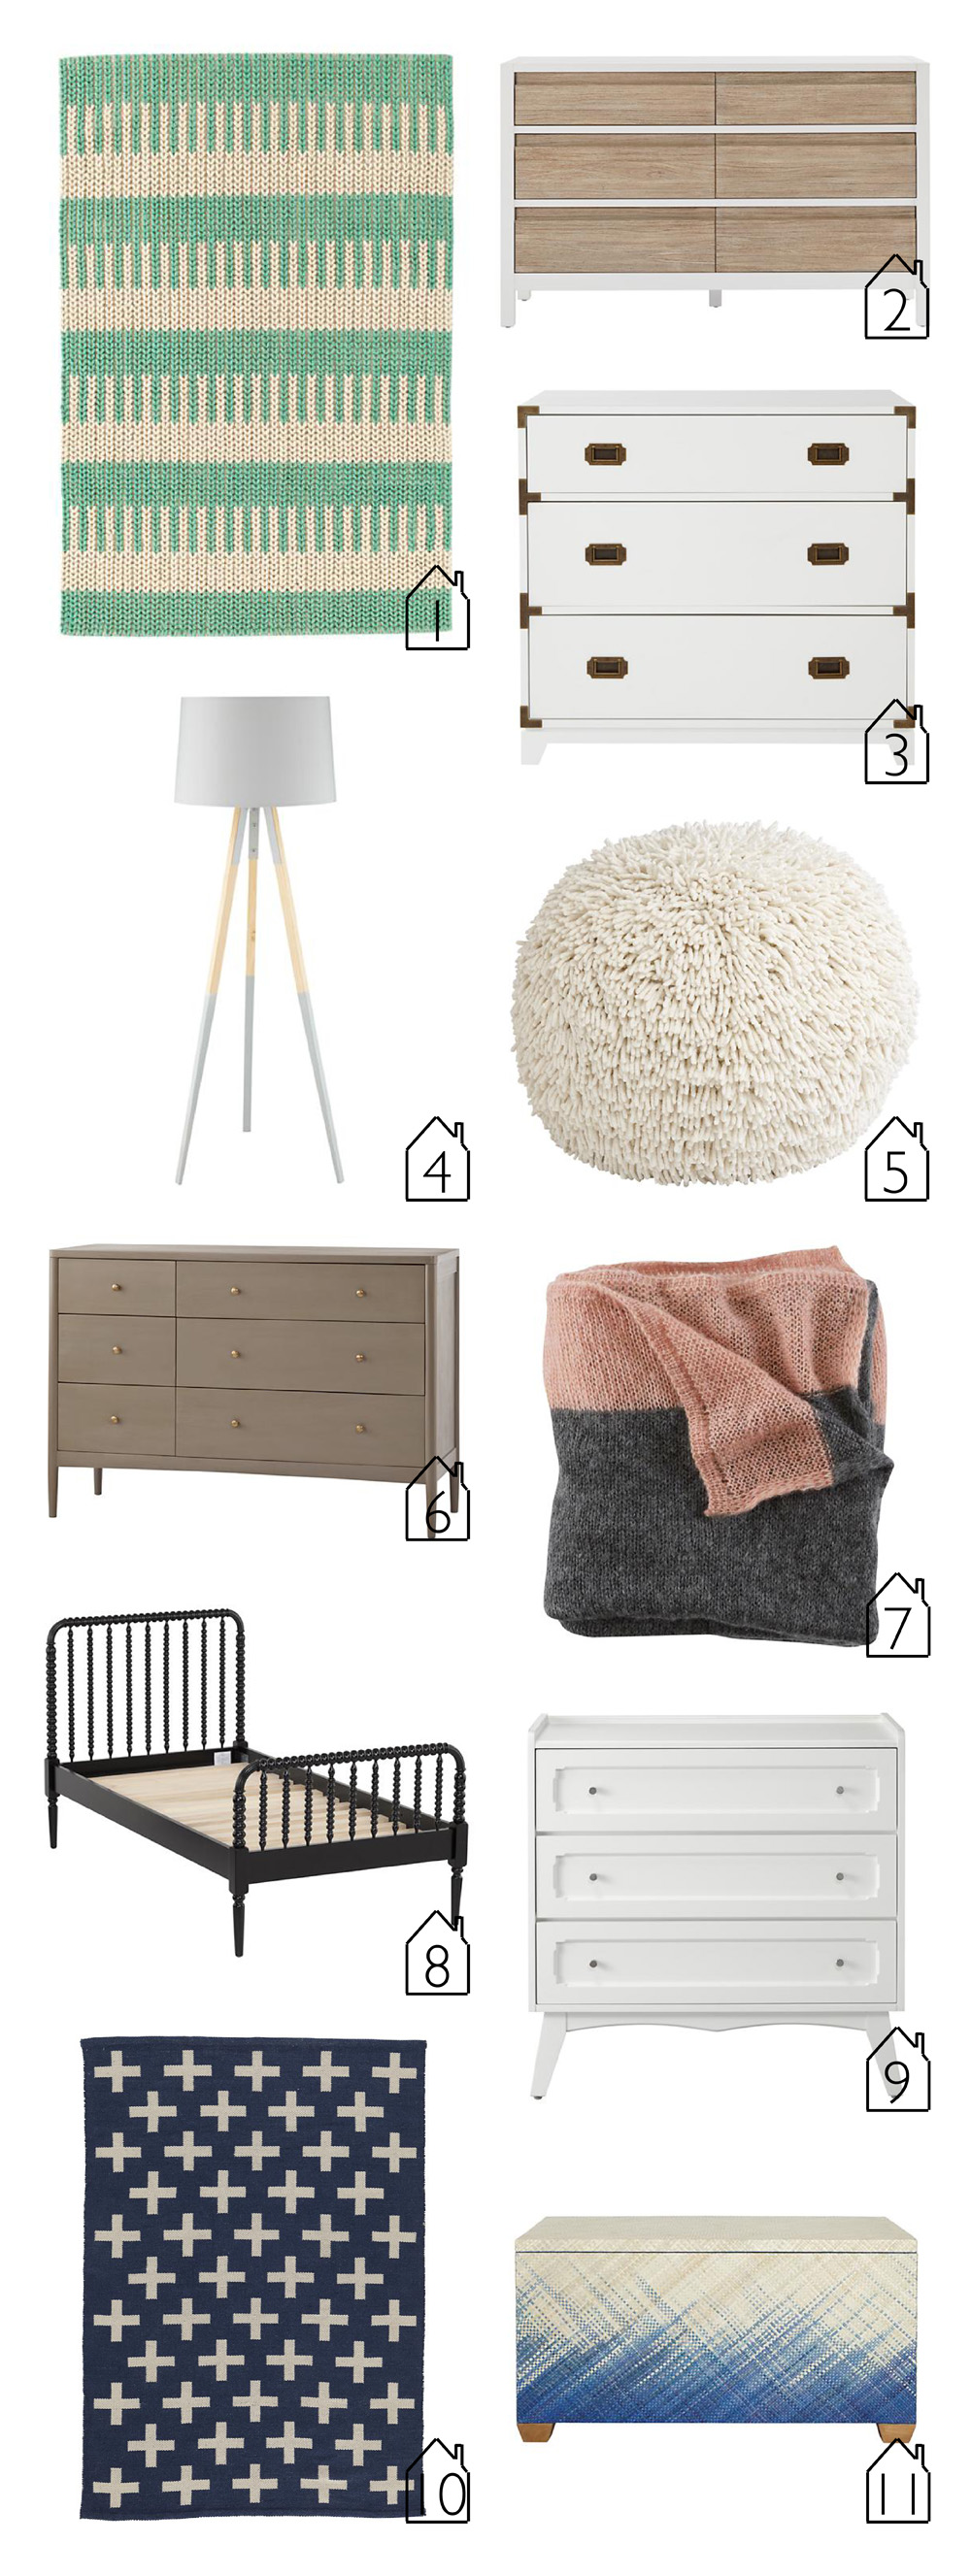 1. 88 Key Rug (Teal)  2. Andersen 6 Drawer Dresser 3. Campaign Dresser (white) 4. Cinema Floor Lamp 5. Shaggy Pouf  6. Hampshire 6 Drawer Dresser (Clay)  7. Swan Soiree Baby Bedding  8. Jenny Lind Kids Bed (Black)  9. Monarch 3 Drawer Dresser 10. Indoor + Outdoor Rug (Blue)  11. Color Weave Toy Box (Blue)